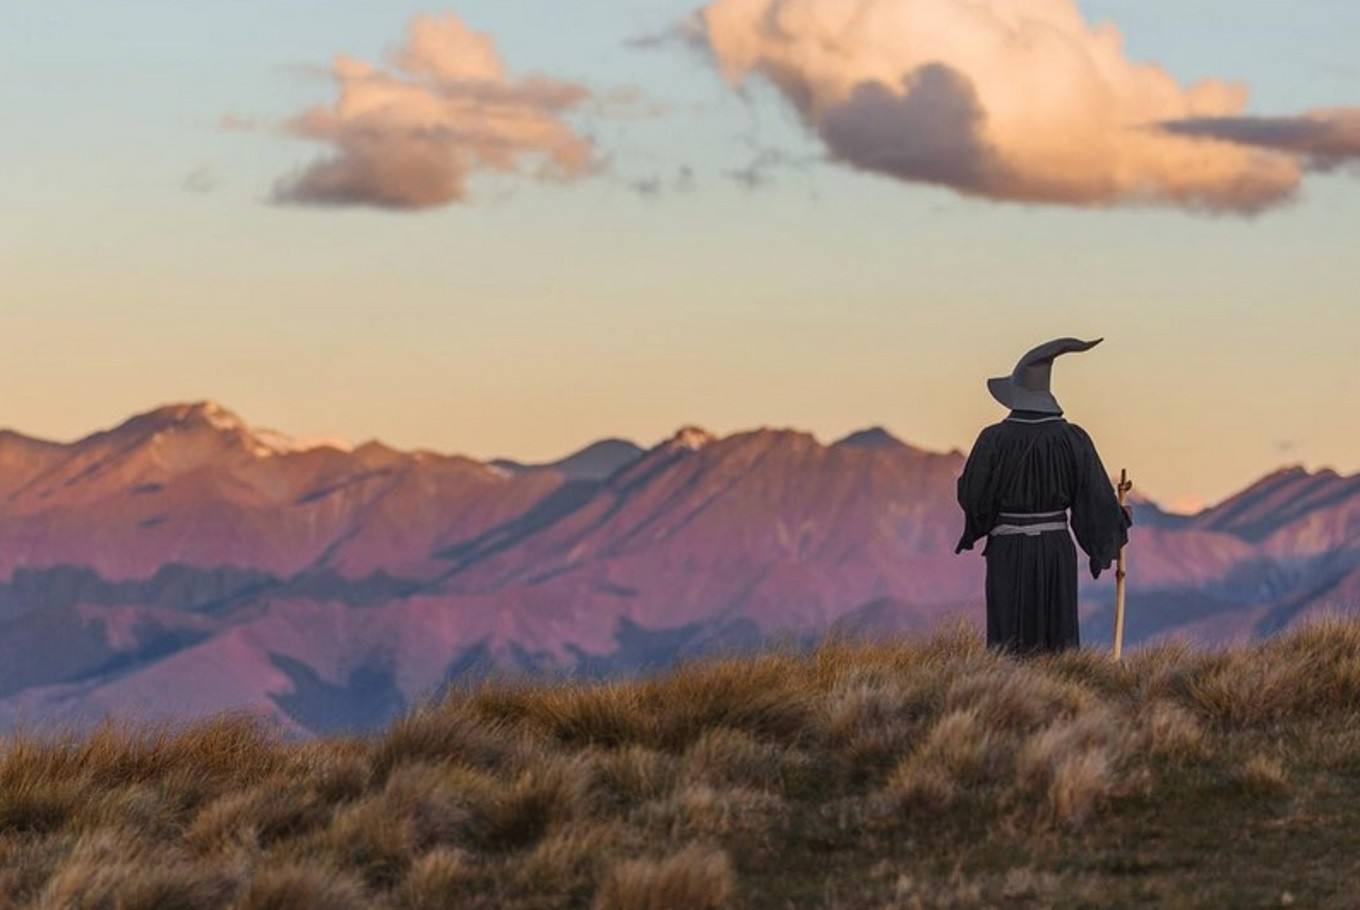 Gandalf the Grey wanders through New Zealand with amateur photographer